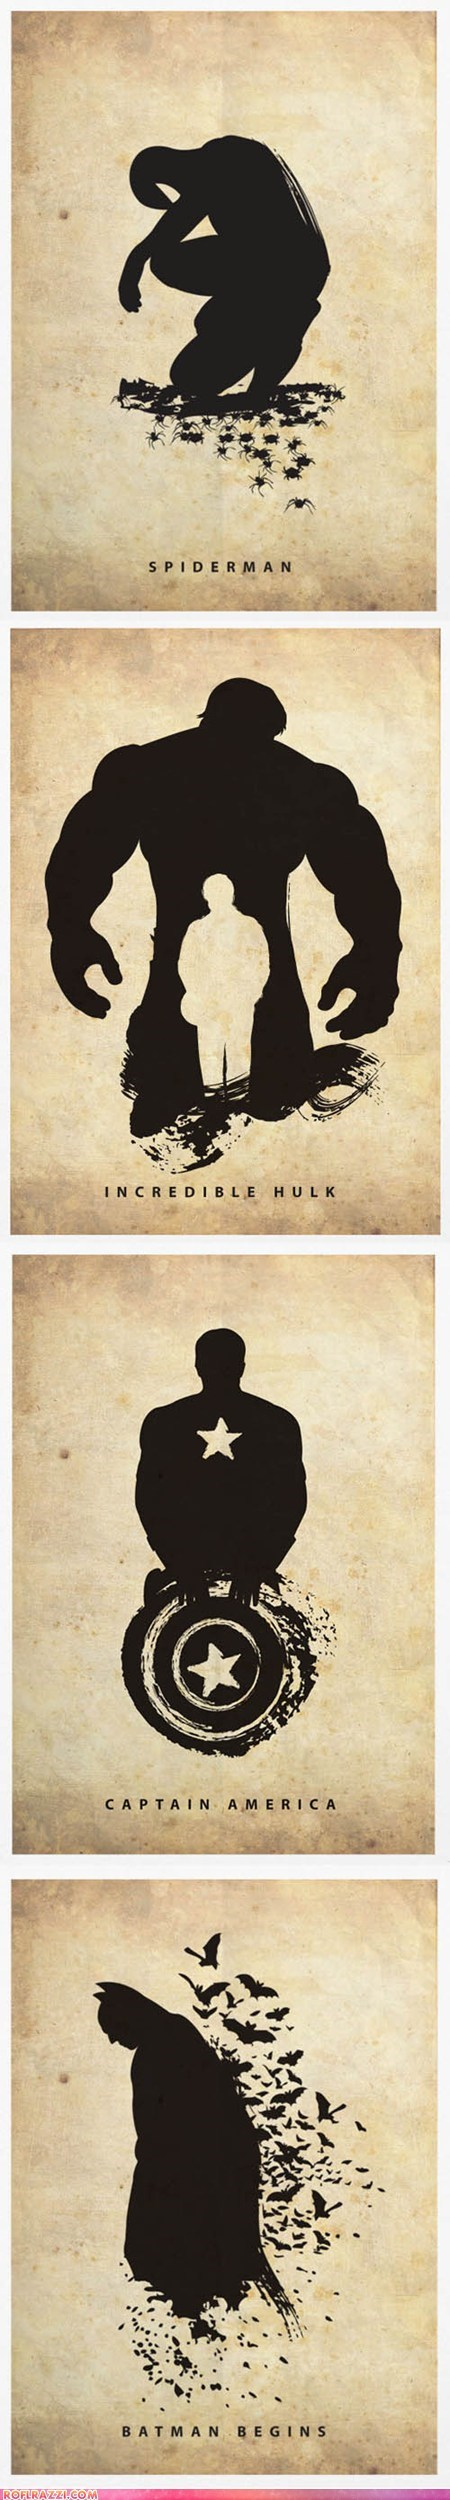 Creatively Silhouetted Posters of Superheroes